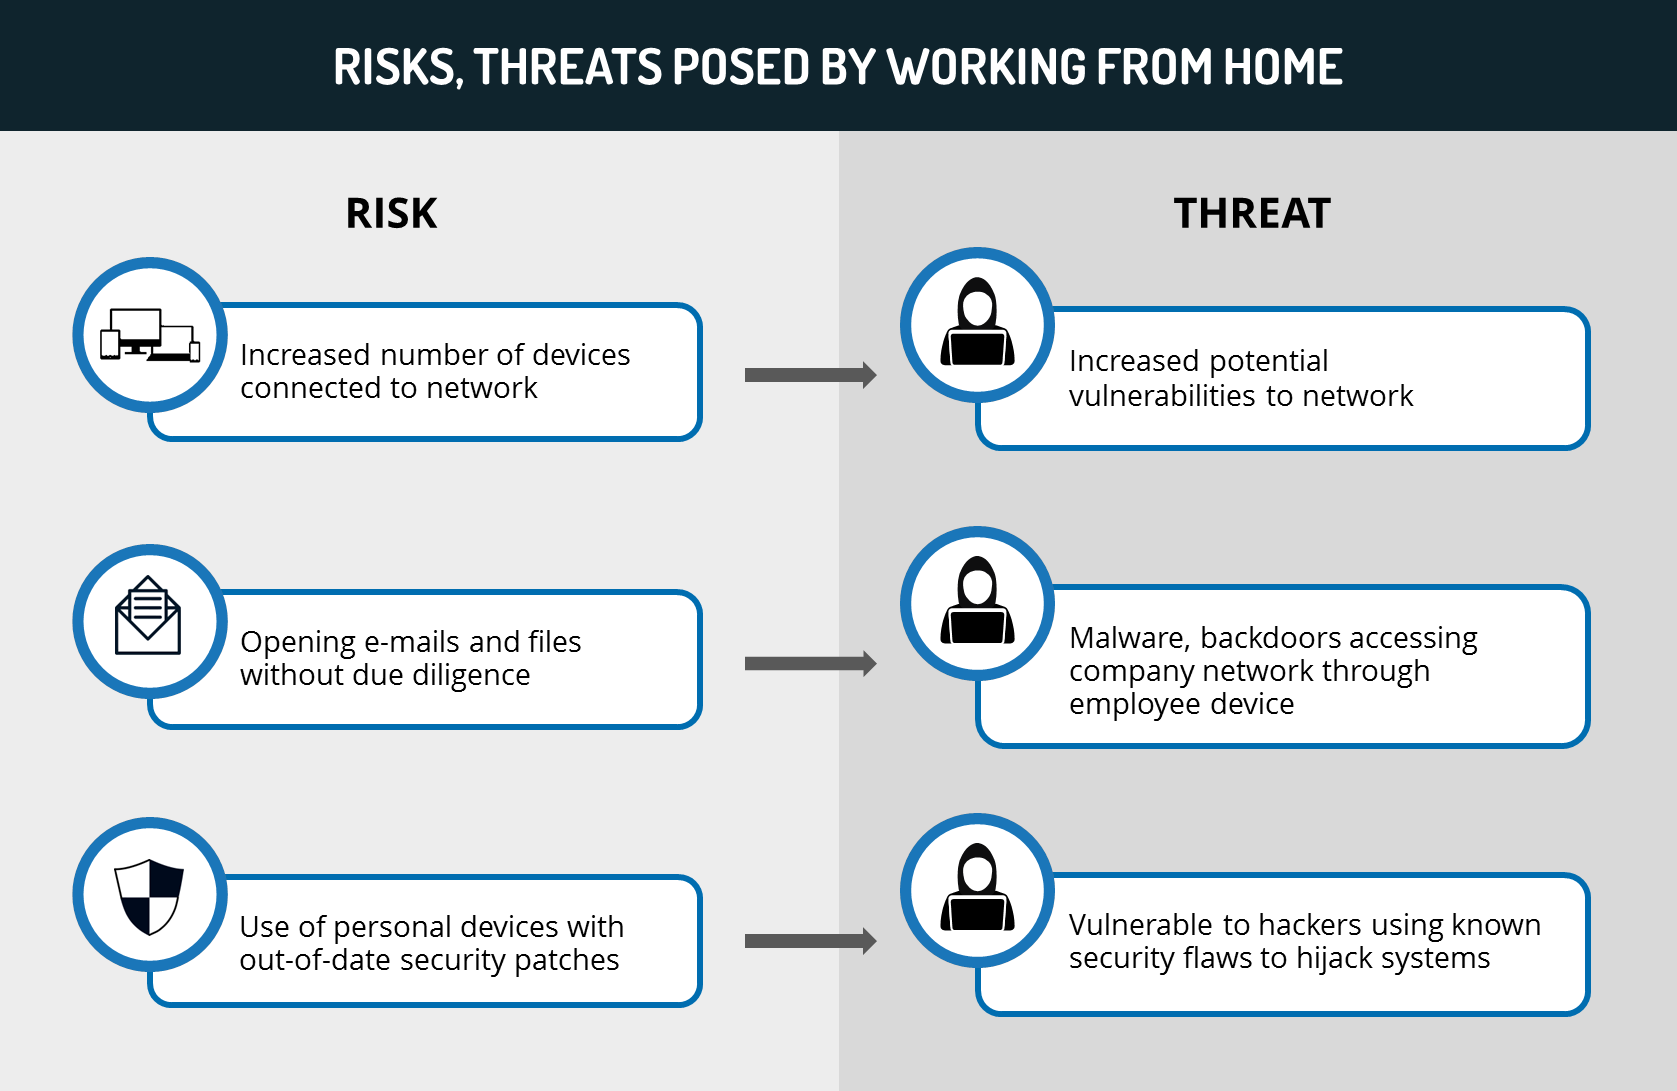 risks, threats posed by working from home